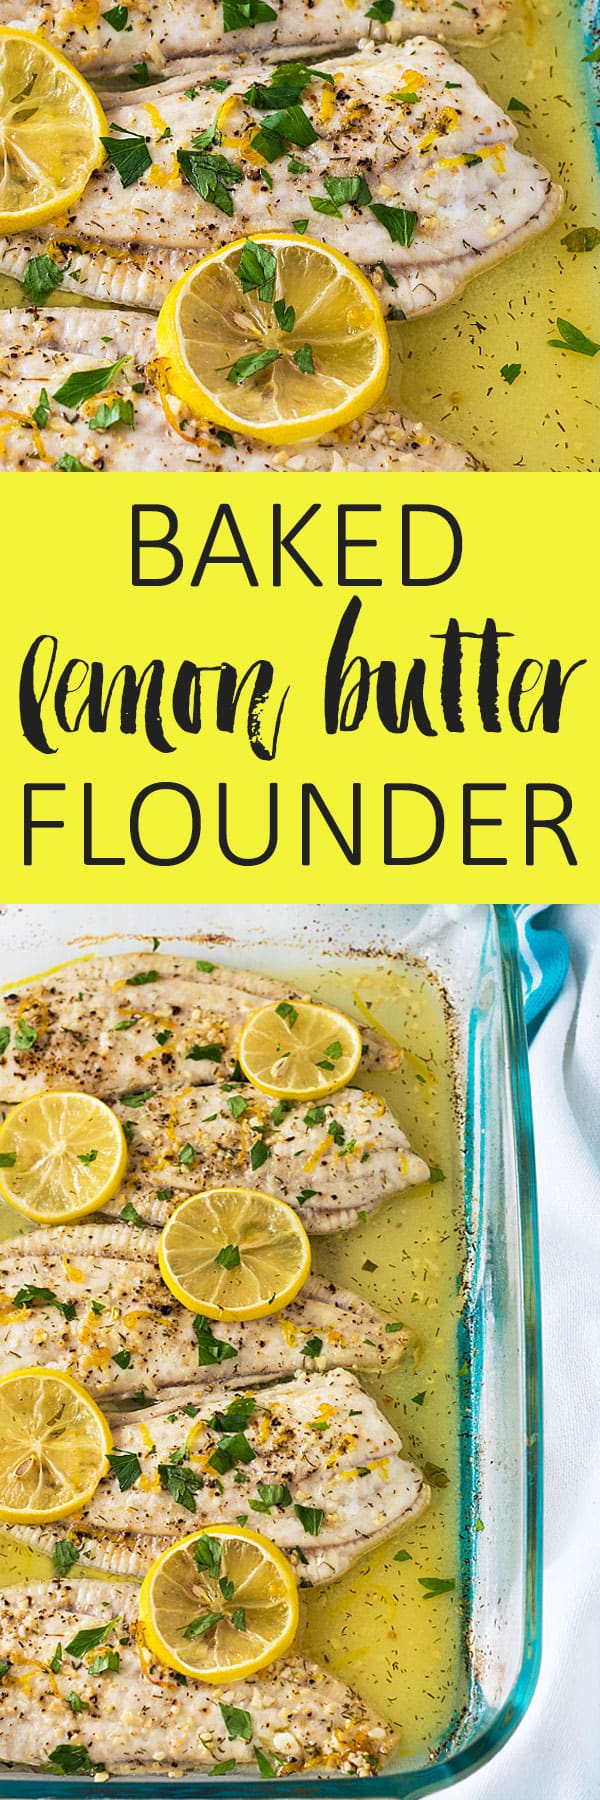 Two images of baked flounder in a dish.  Text in center says baked lemon butter flounder.